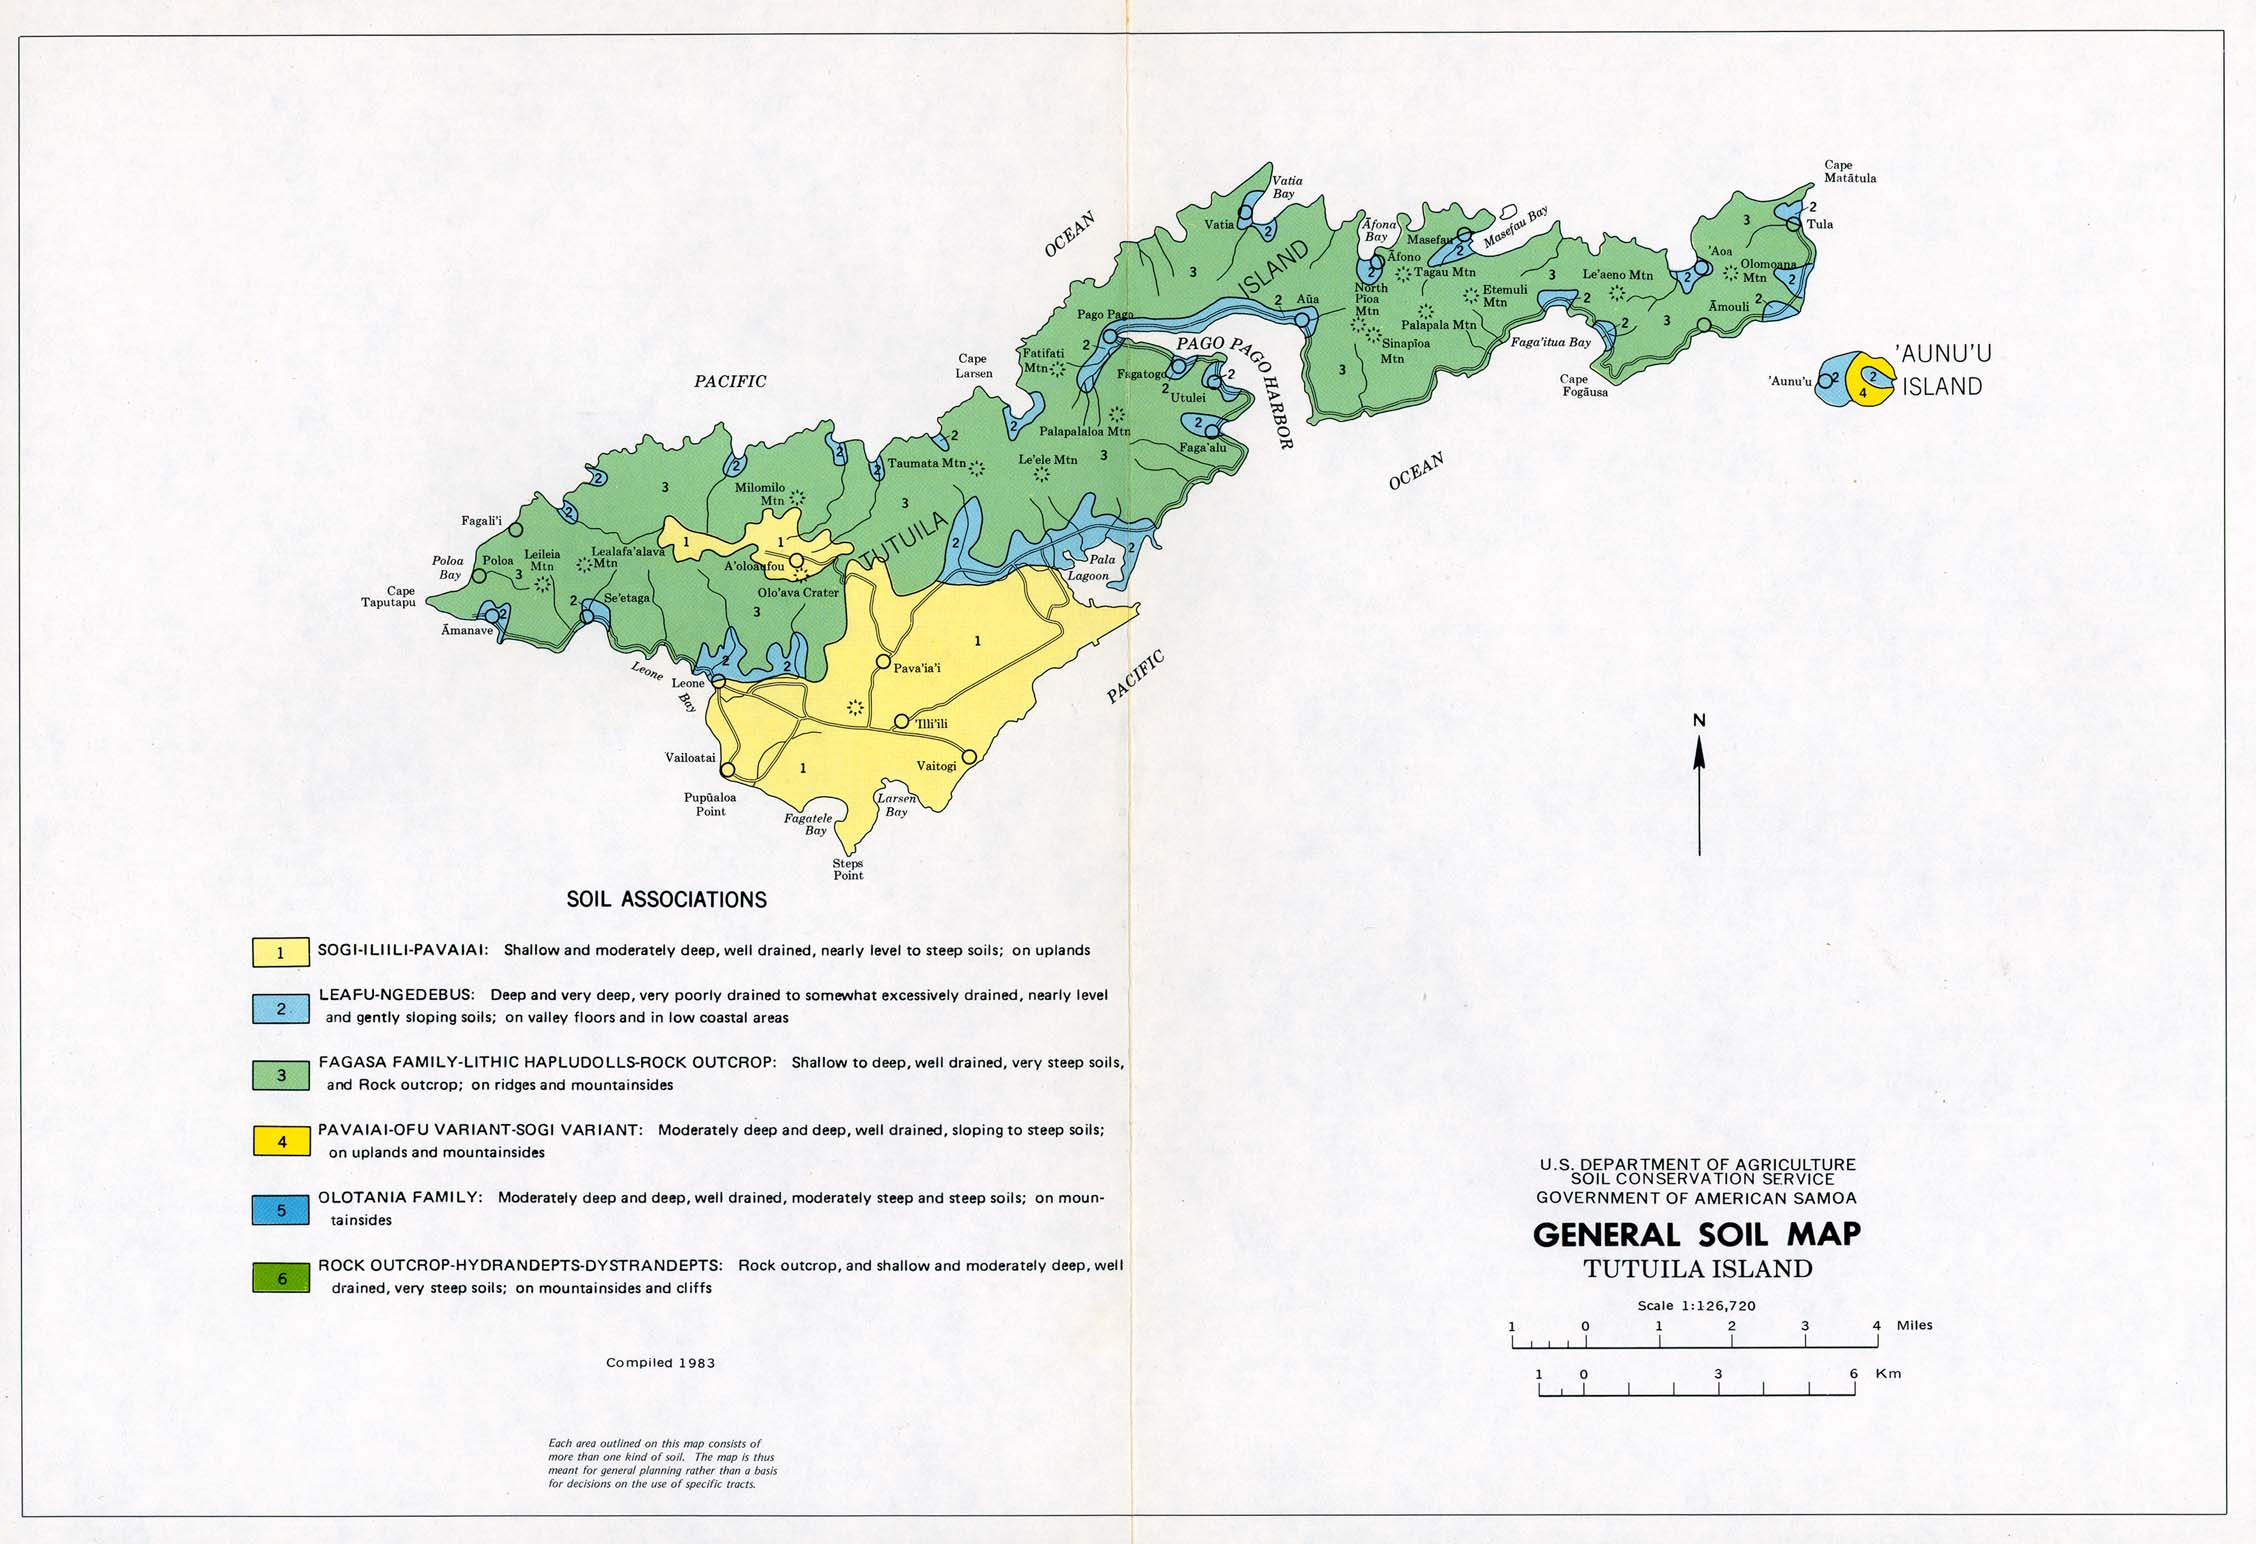 Download free american samoa maps tutuila island general soil map united states department of agriculture soil conservation service compiled 1983 286k gumiabroncs Image collections